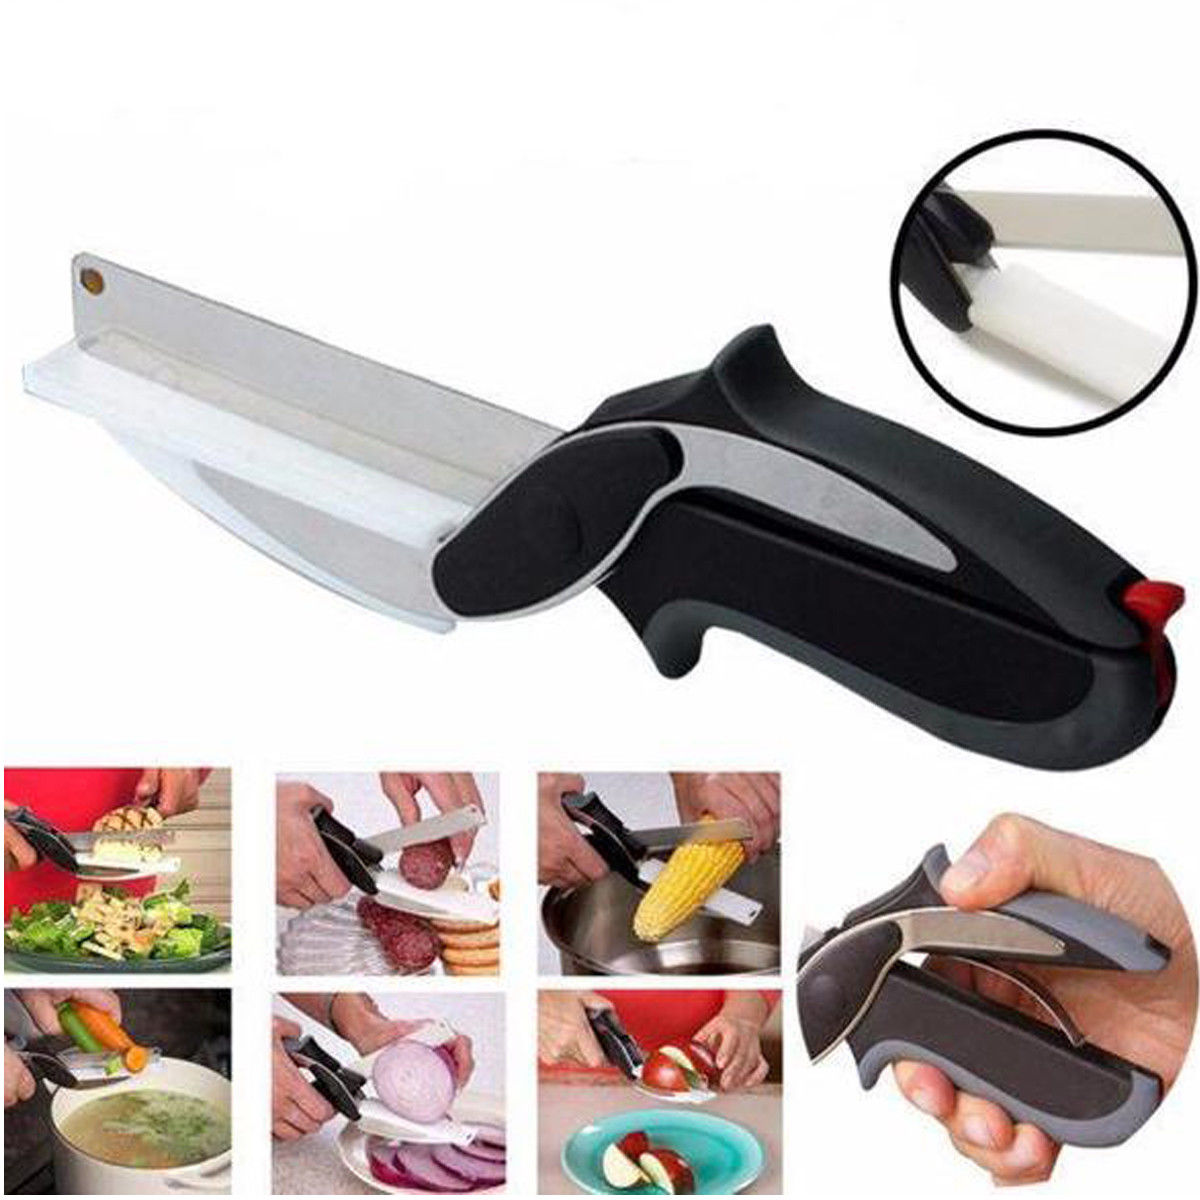 Stainless Steel Kitchen Scissors 2 in 1 Cutting Board Kitchen Chopper Clever Fruit Vegetable Scissors Multifunctional